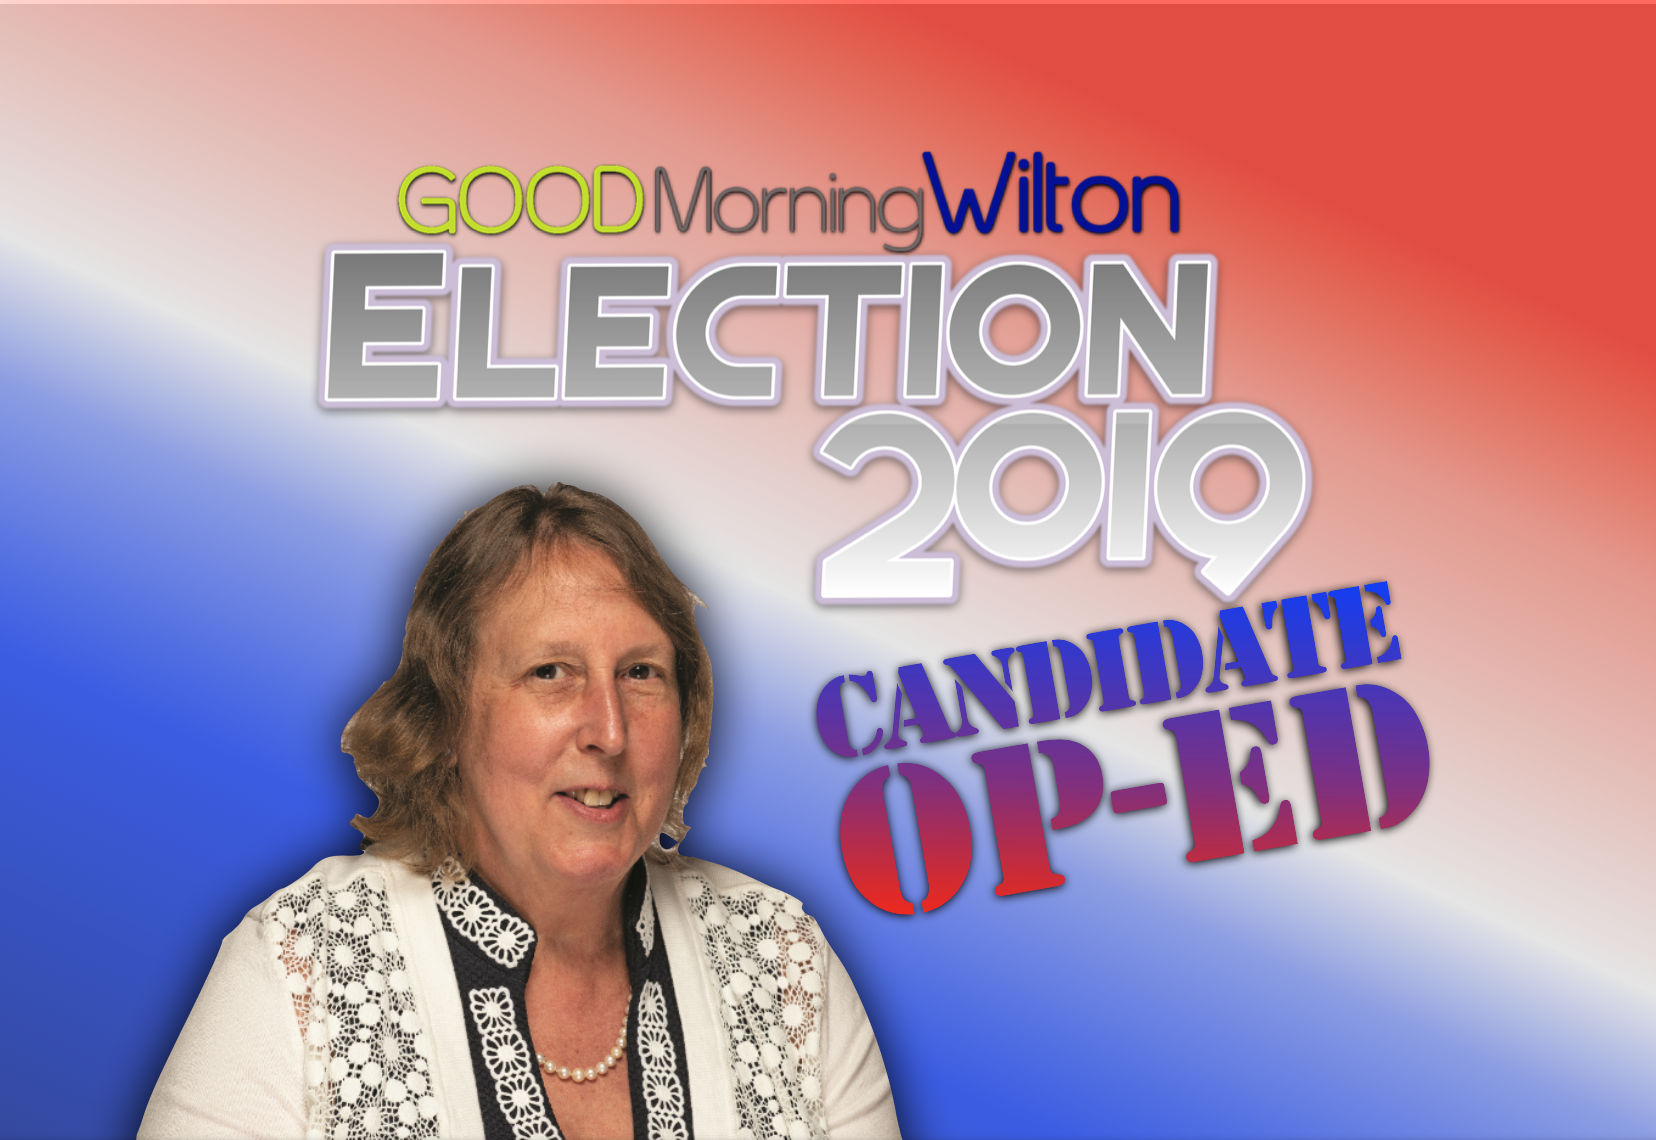 Election2019 Candidate OP-ED: Florence Johnson, Planning & Zoning Commission